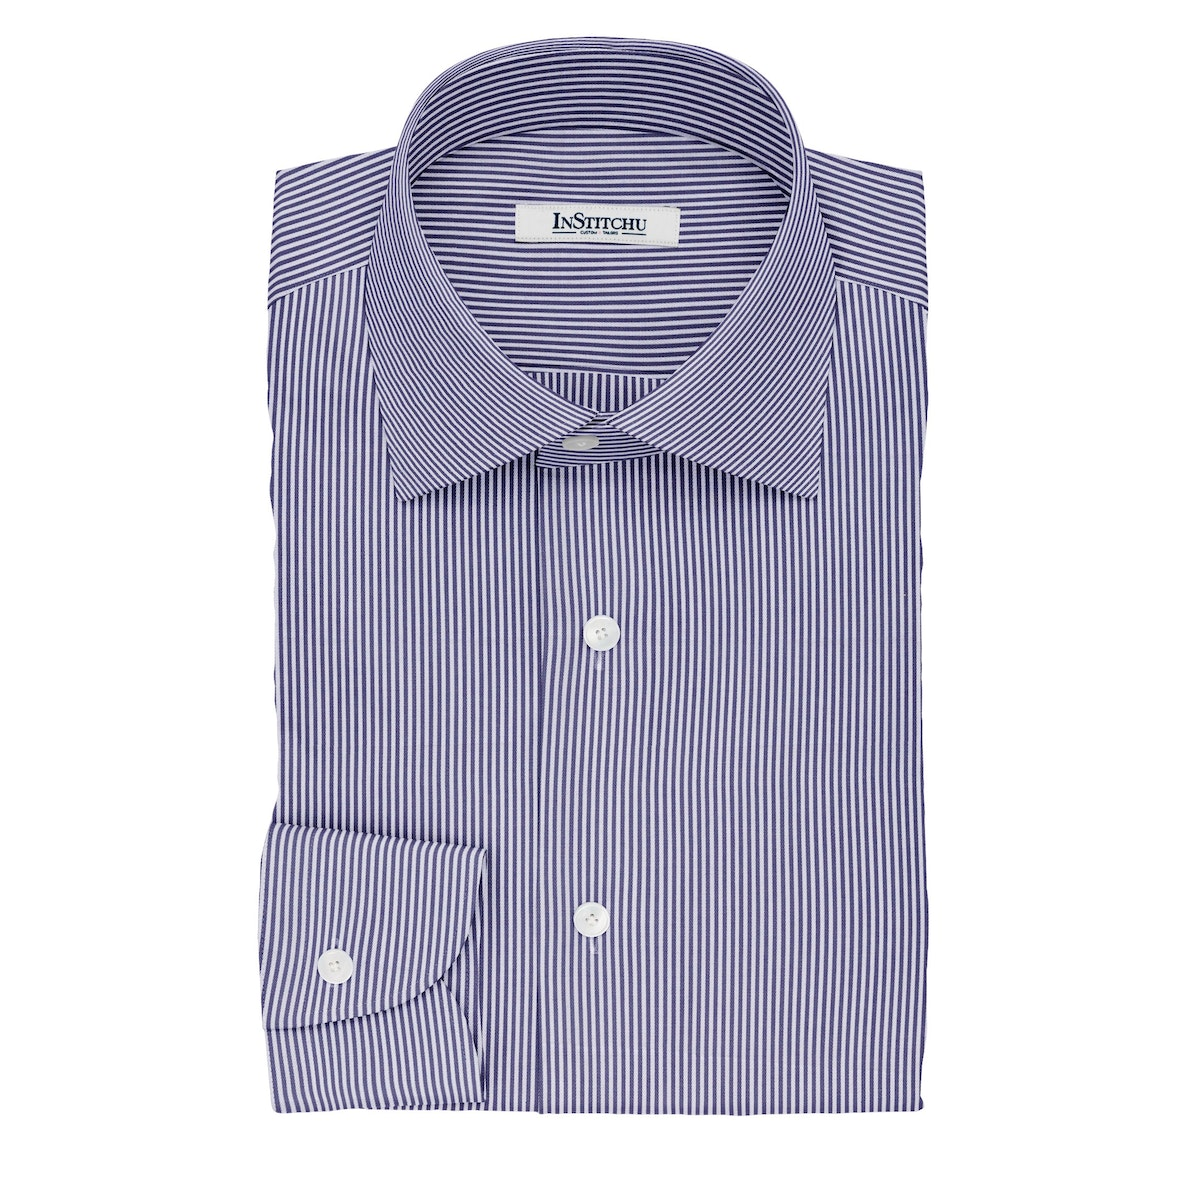 InStitchu Collection The Coates Navy and White Striped Cotton Shirt